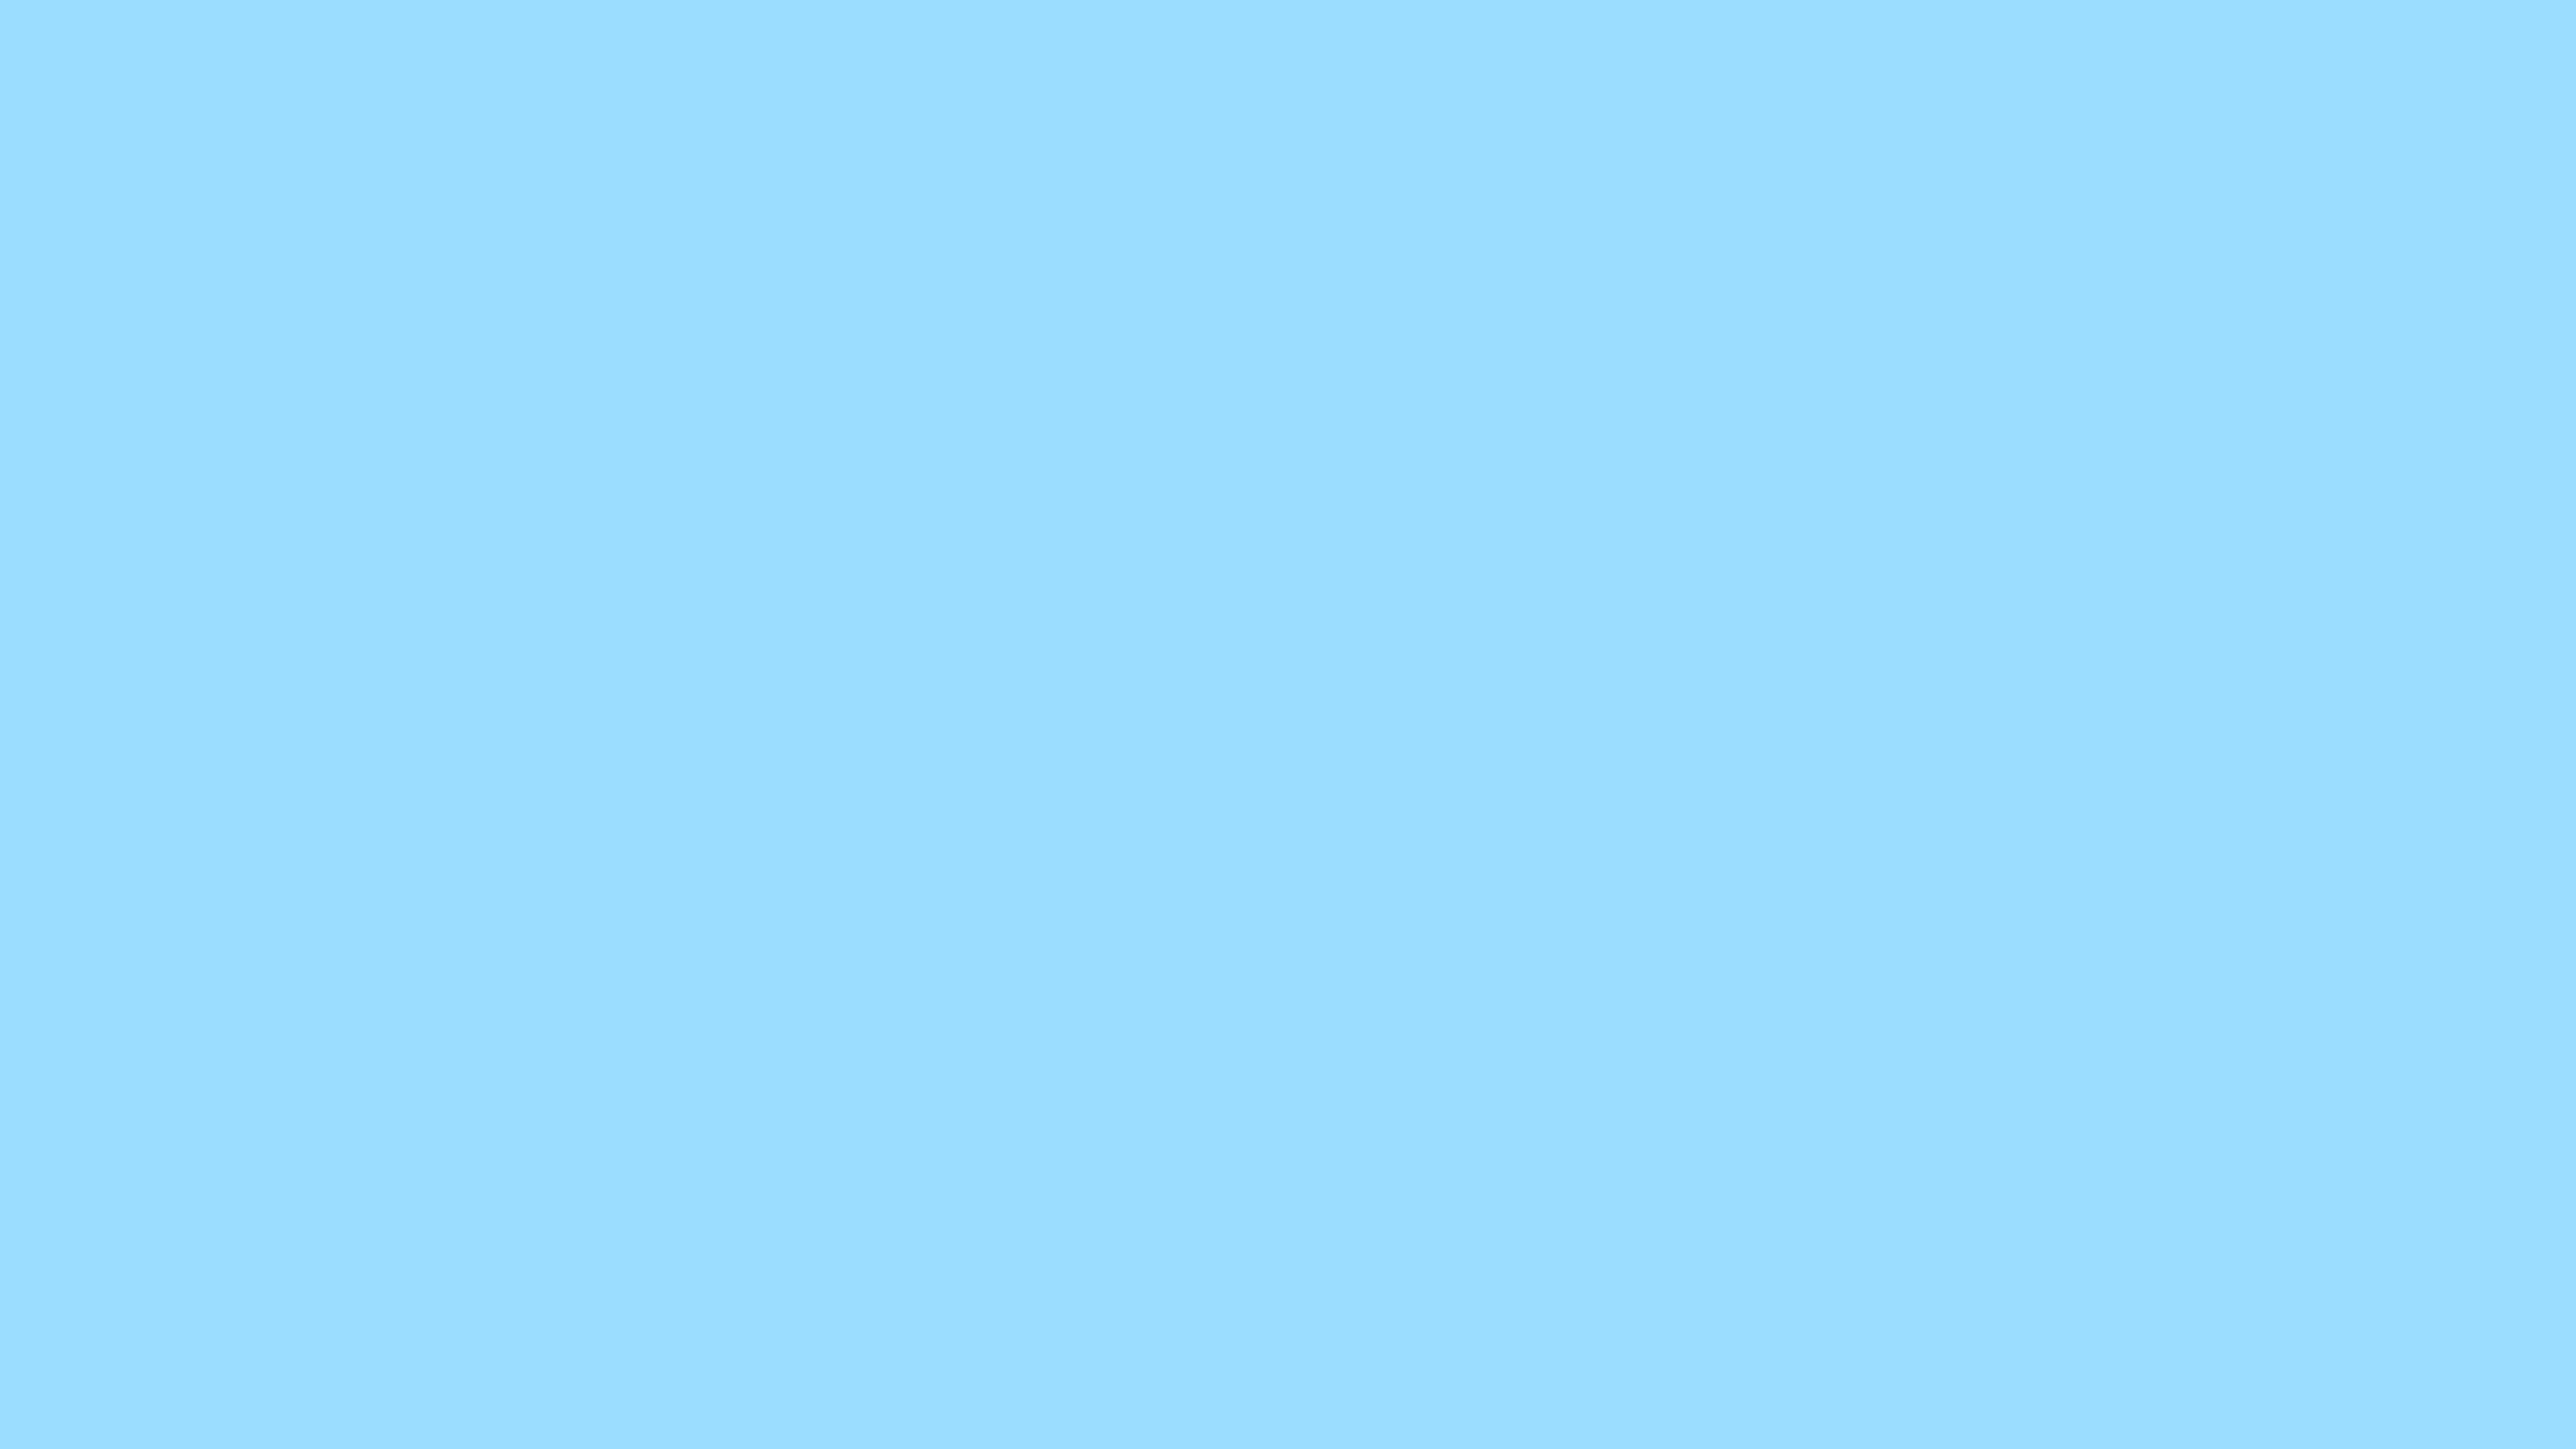 3840x2160 Columbia Blue Solid Color Background